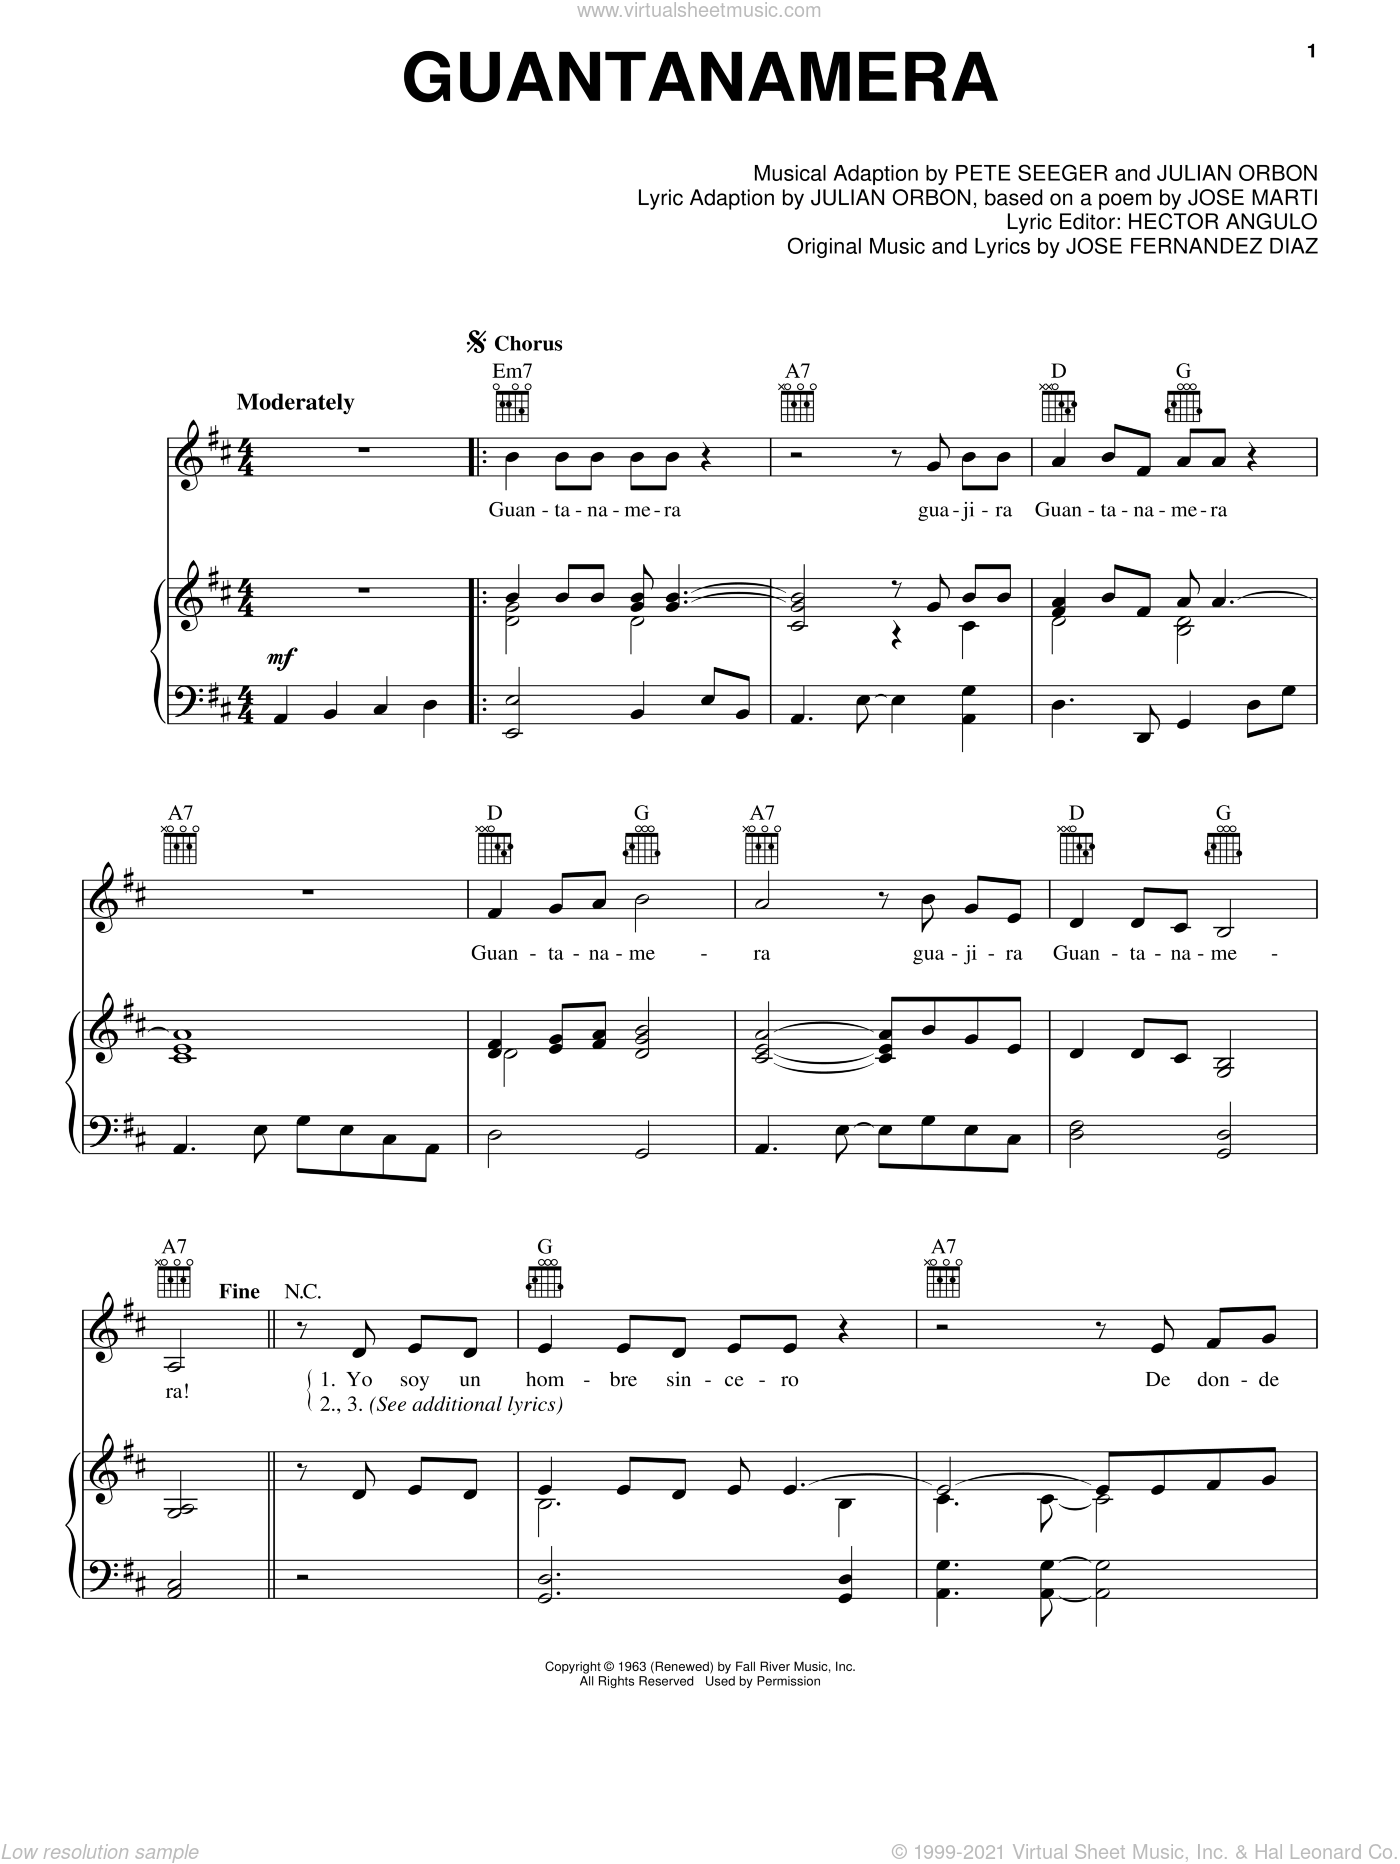 Guantanamera sheet music for voice, piano or guitar by Pete Seeger, Hector Angulo, Jose Fernandez Diaz, Jose Fernandez Diaz and Julian Orbon, intermediate skill level